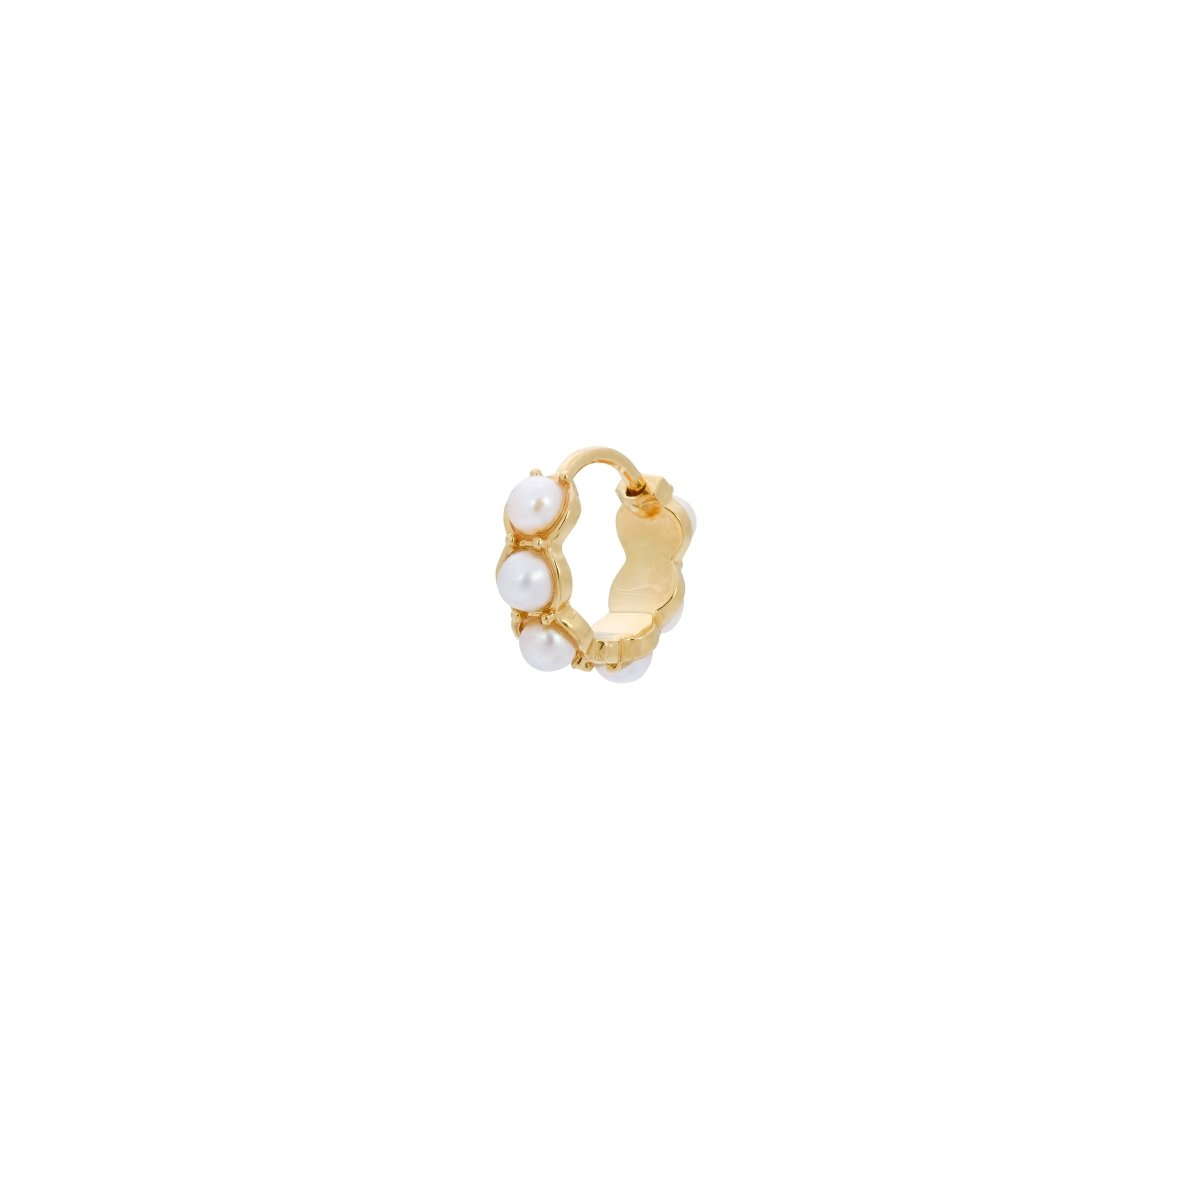 Trendjuwelier Bemelmans - Anna+Nina Single La Perla Ring Earring Goldplated